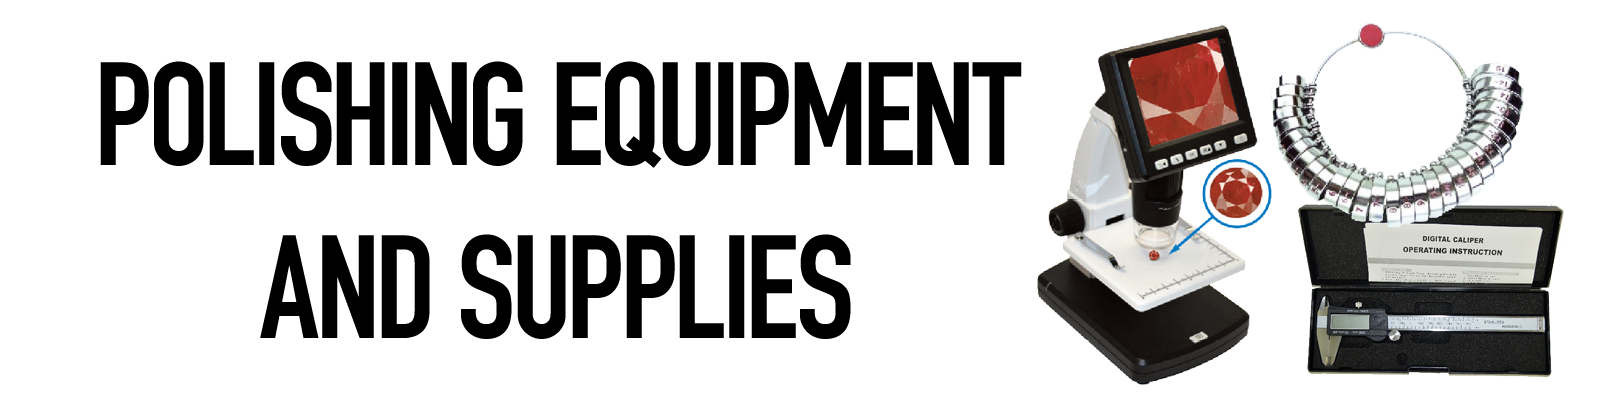 Polishing Equipment & Supplies